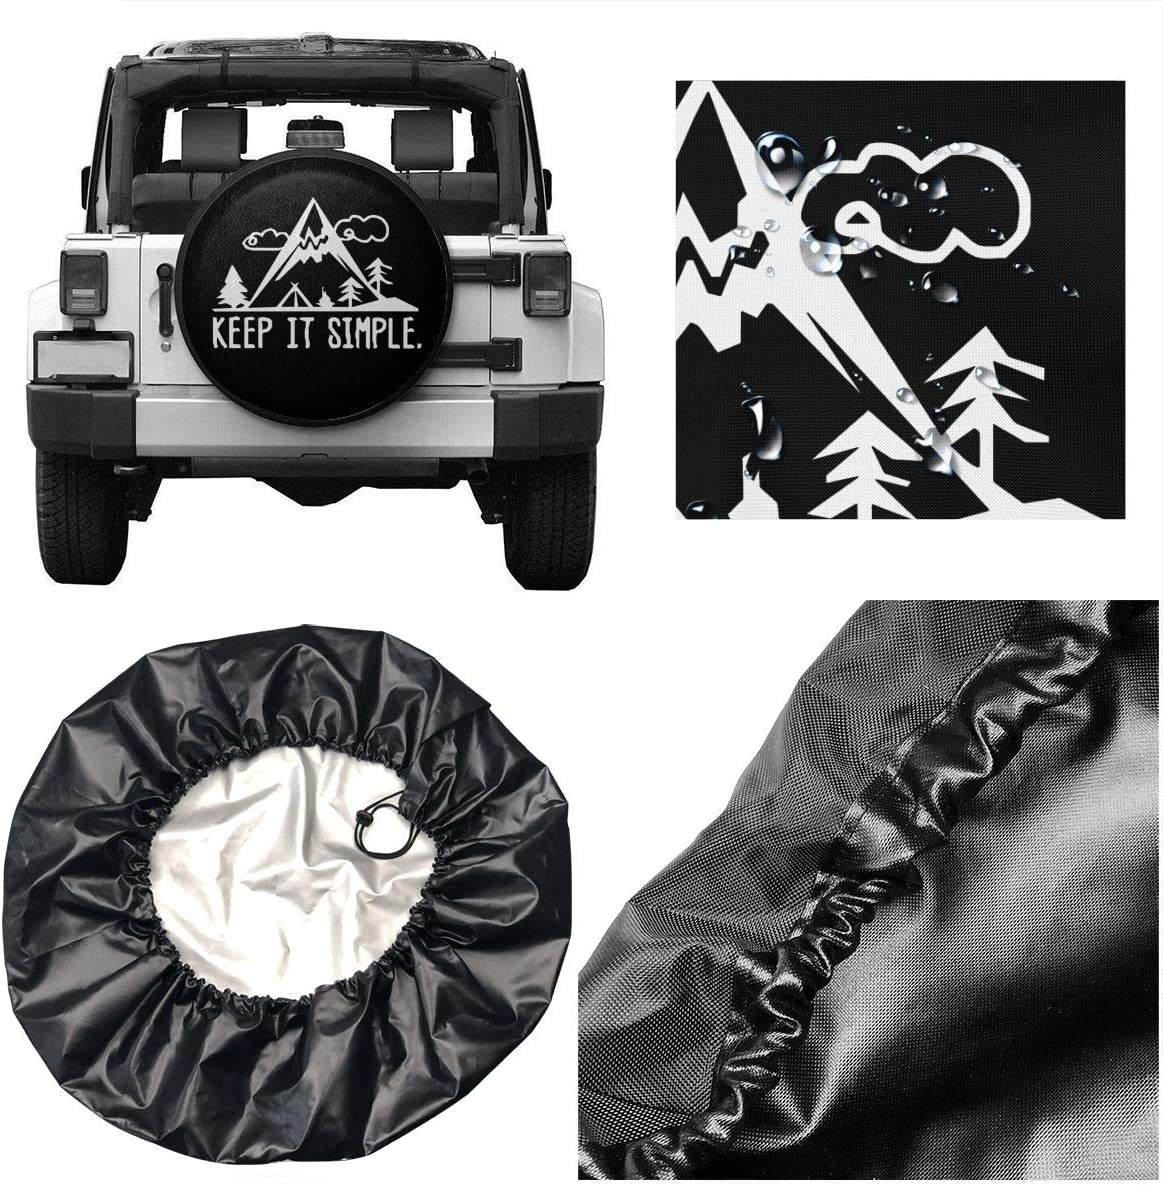 Juhucc I Go Where Im Towed Spare Tire Cover Potable Universal Wheel Covers Powerful Waterproof Tire Cover 14-17 in